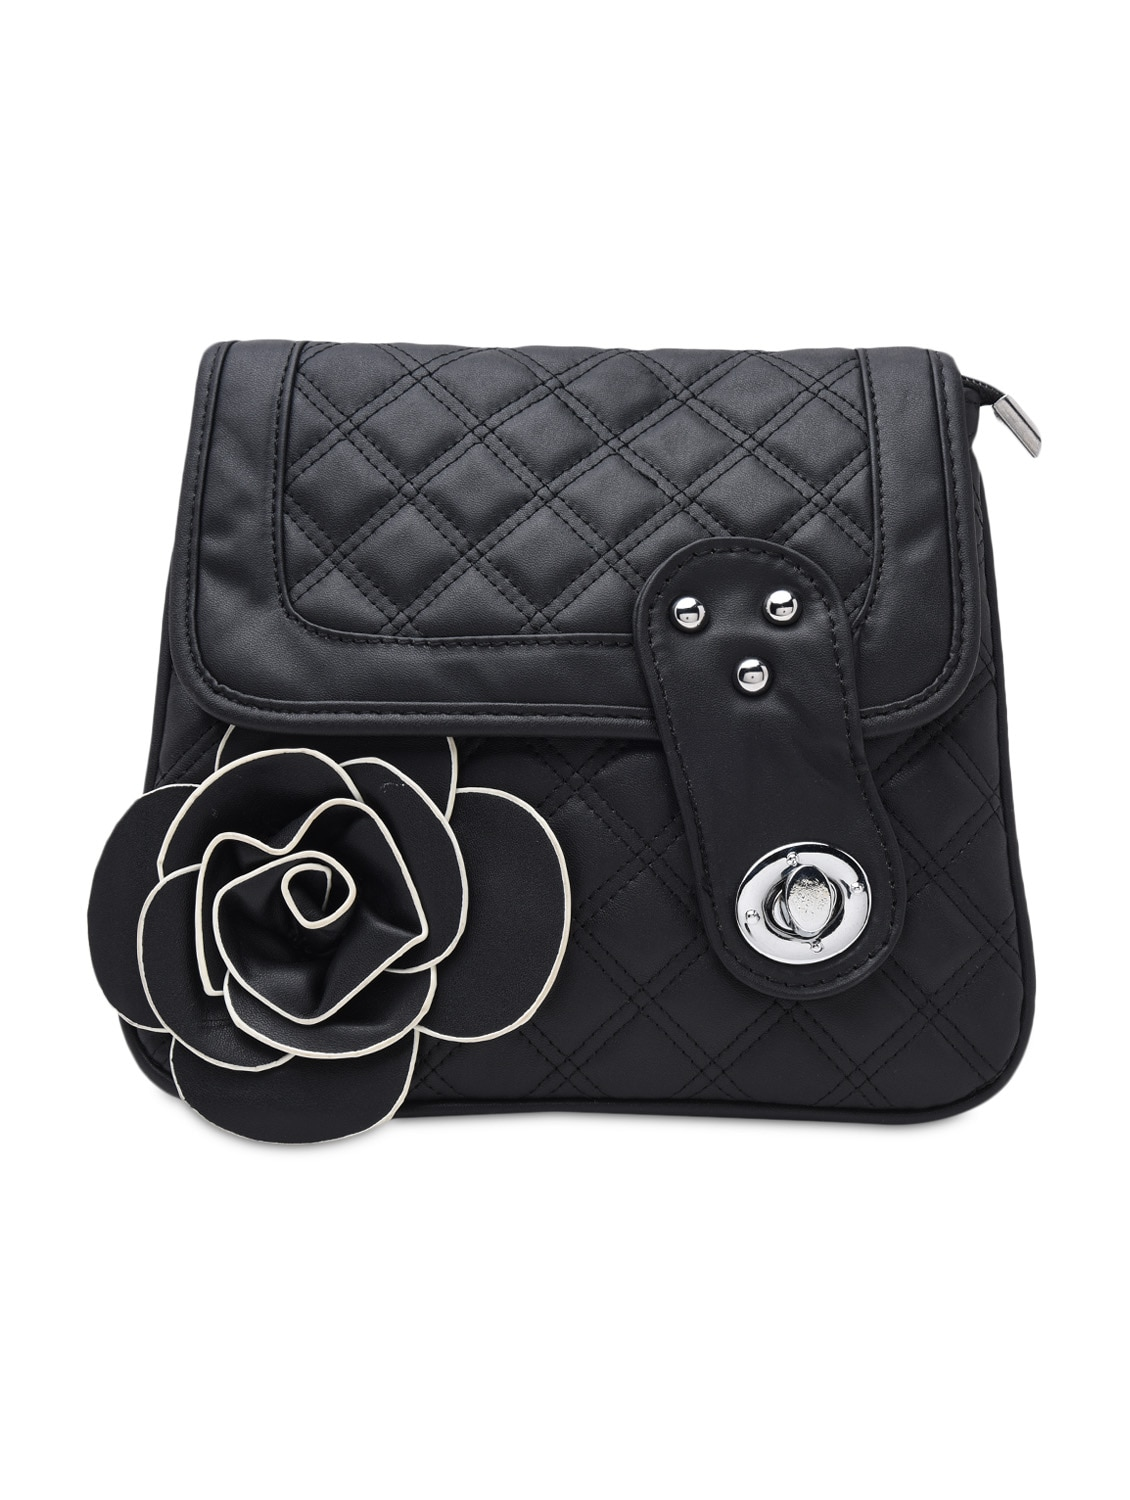 Quilted Black Faux Leather Sling Bag - By